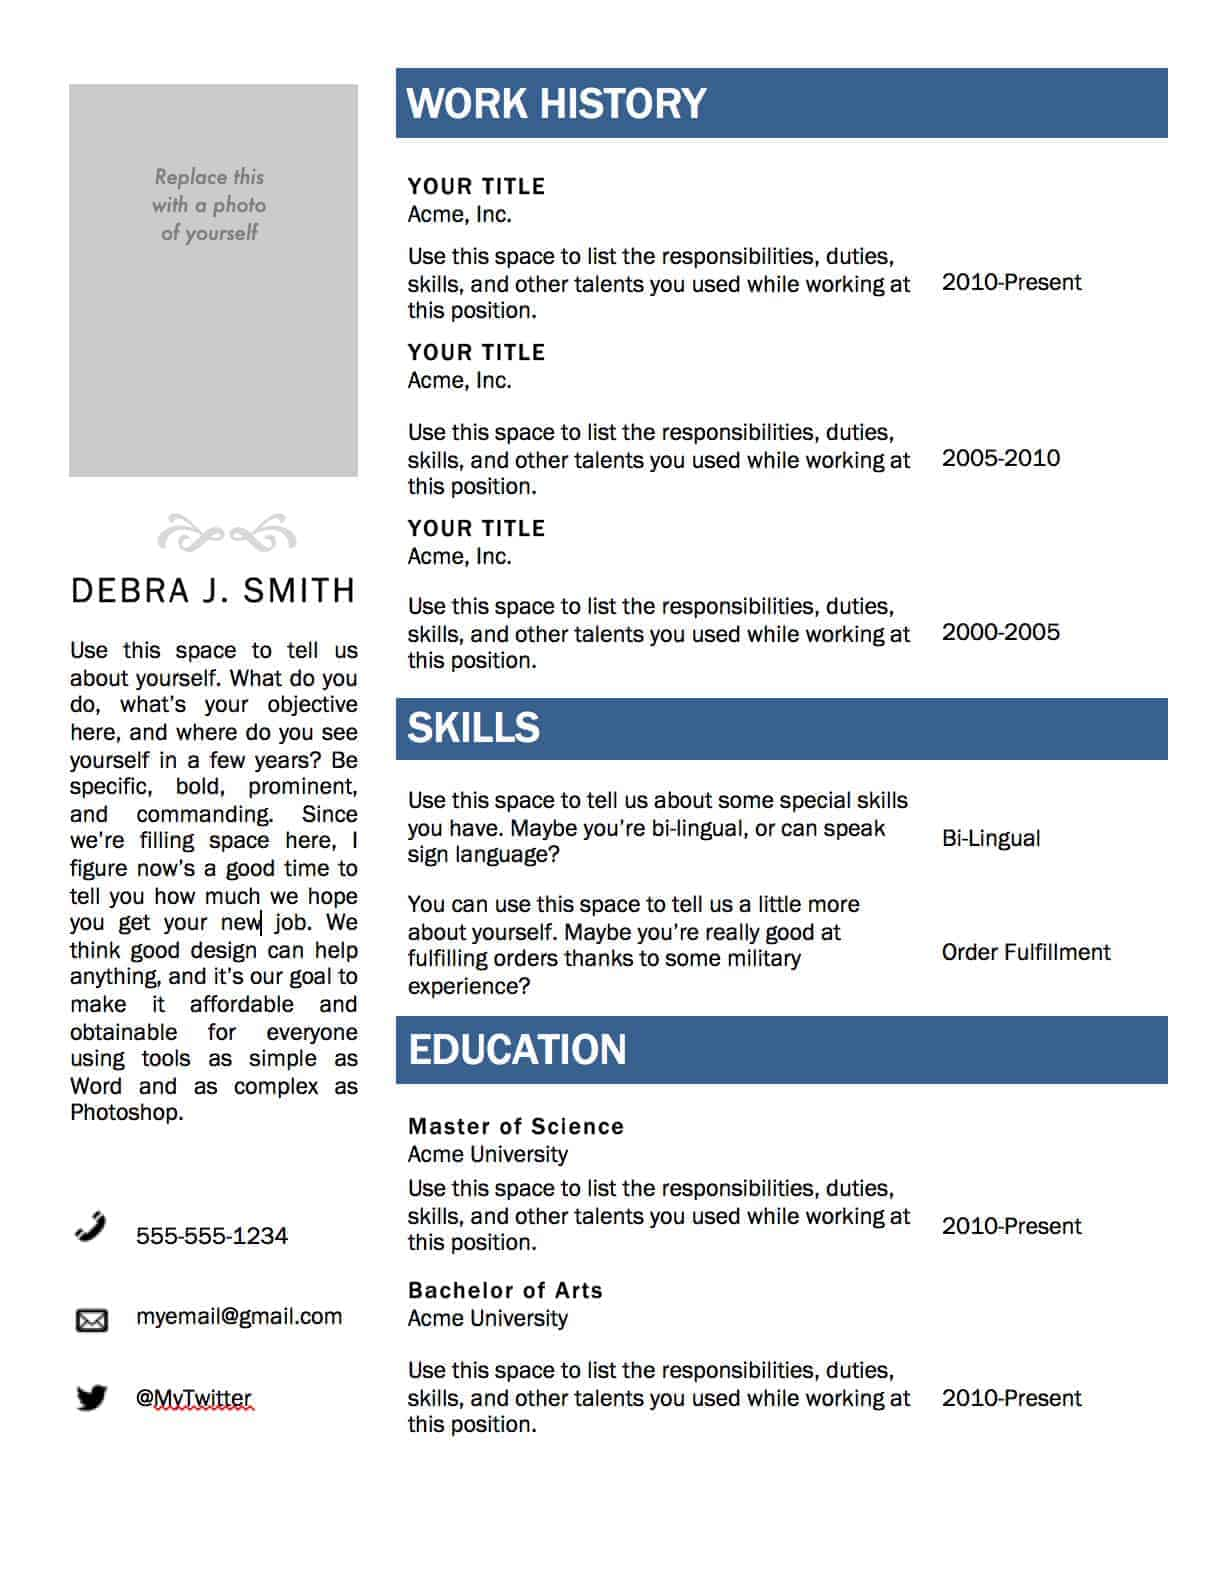 resume formats in ms word 2007 service resume resume formats in ms word 2007 best resume formats and examples job interview career job format word certificate template 31